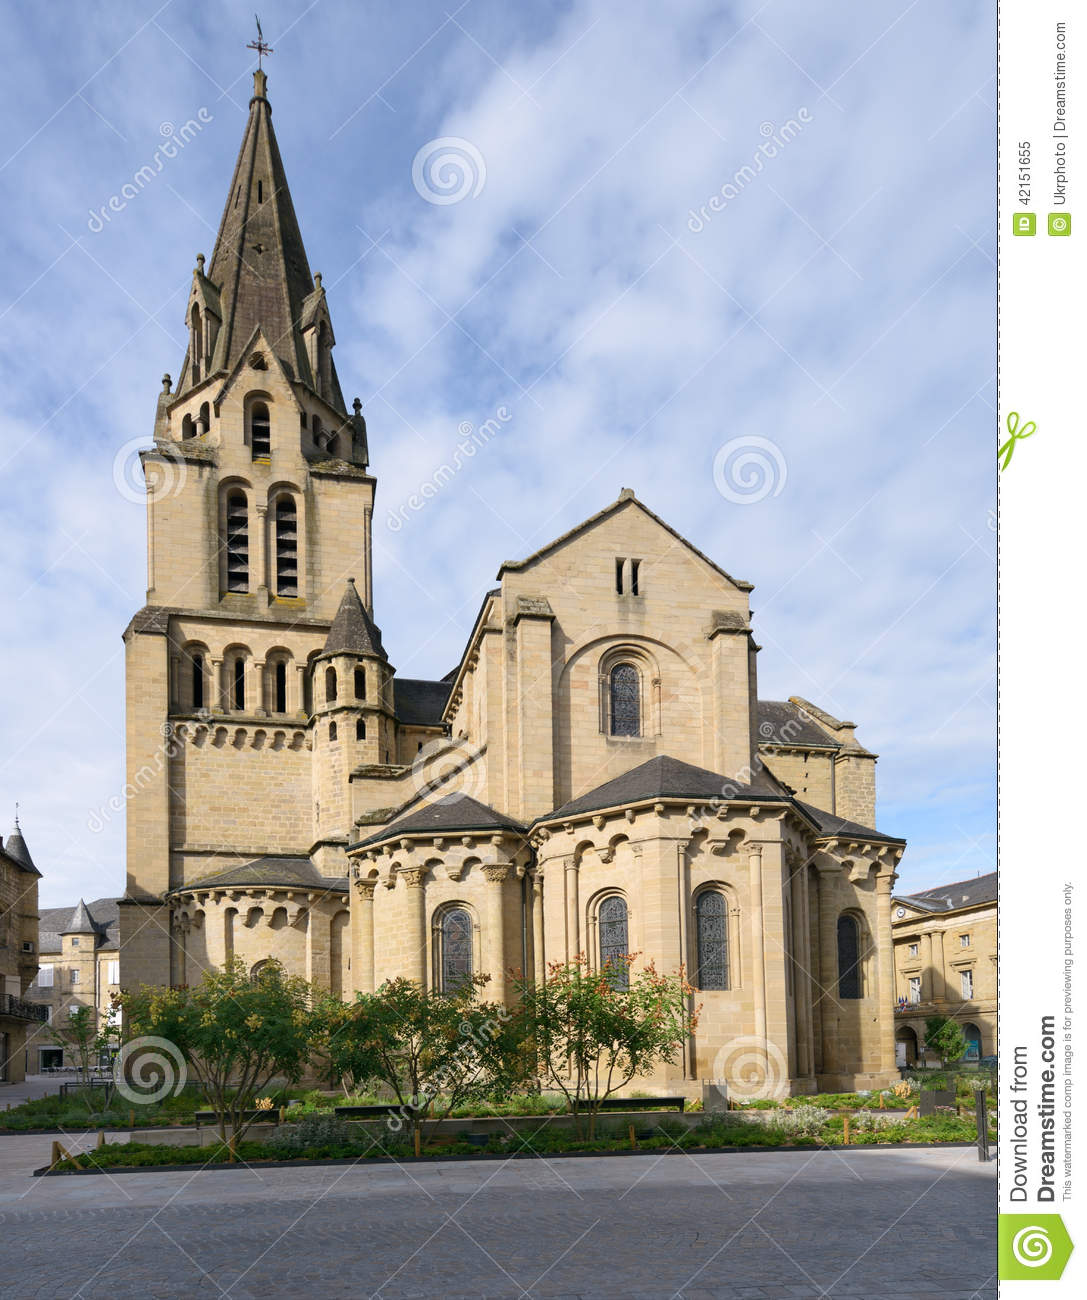 glise de st martin en brive la gaillarde france image. Black Bedroom Furniture Sets. Home Design Ideas